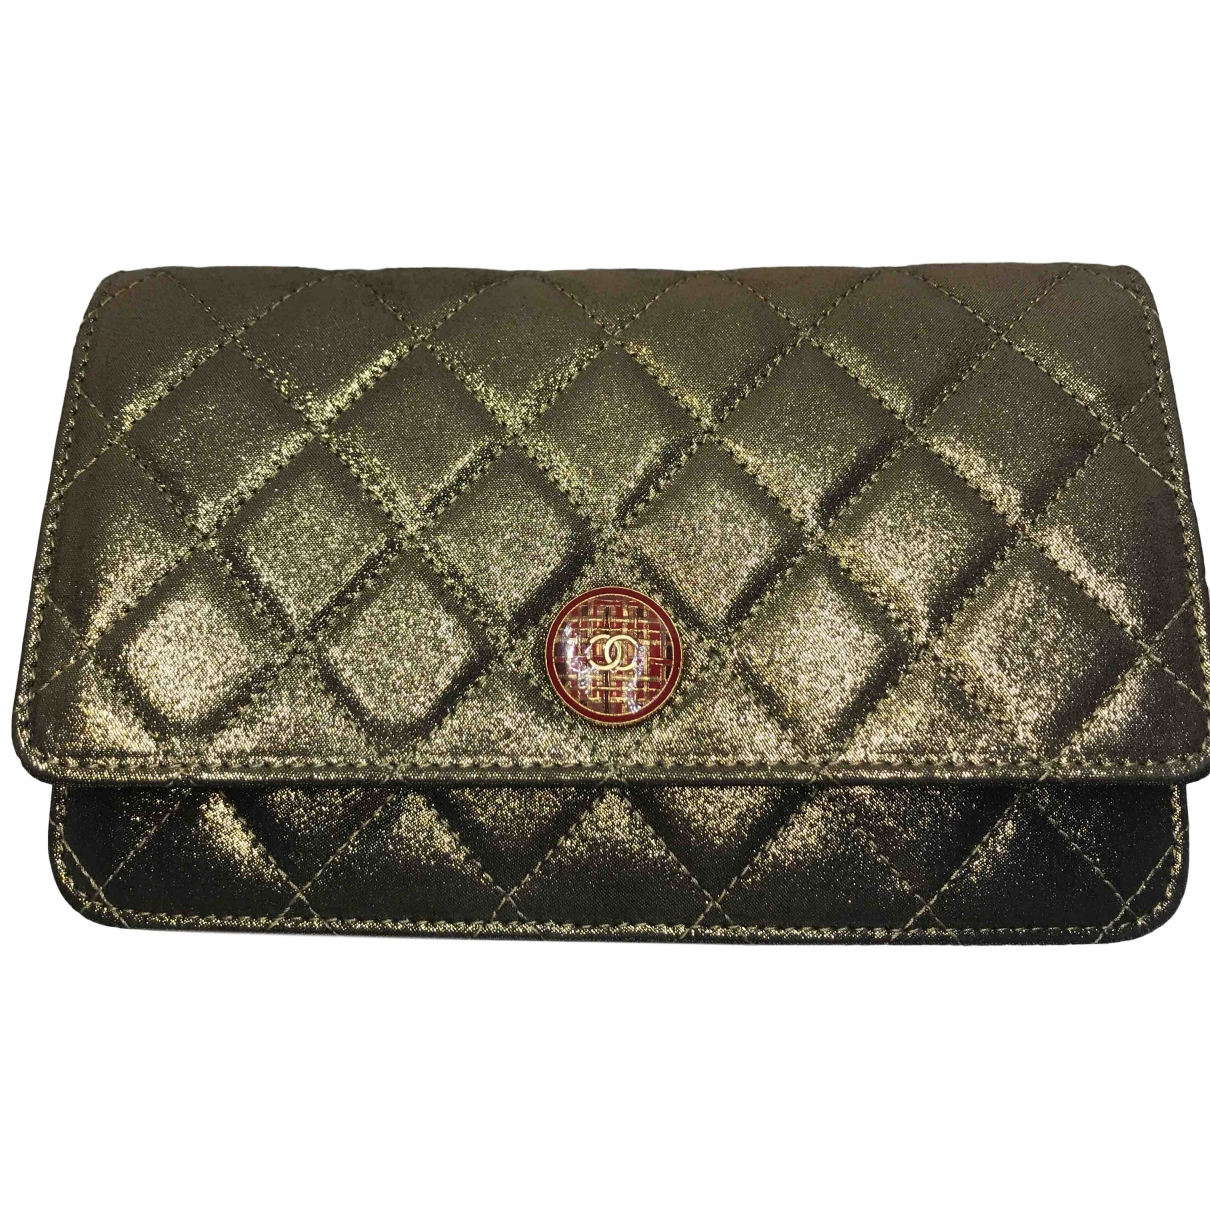 Chanel Wallet on Chain Gold Cloth Clutch bag for Women \N